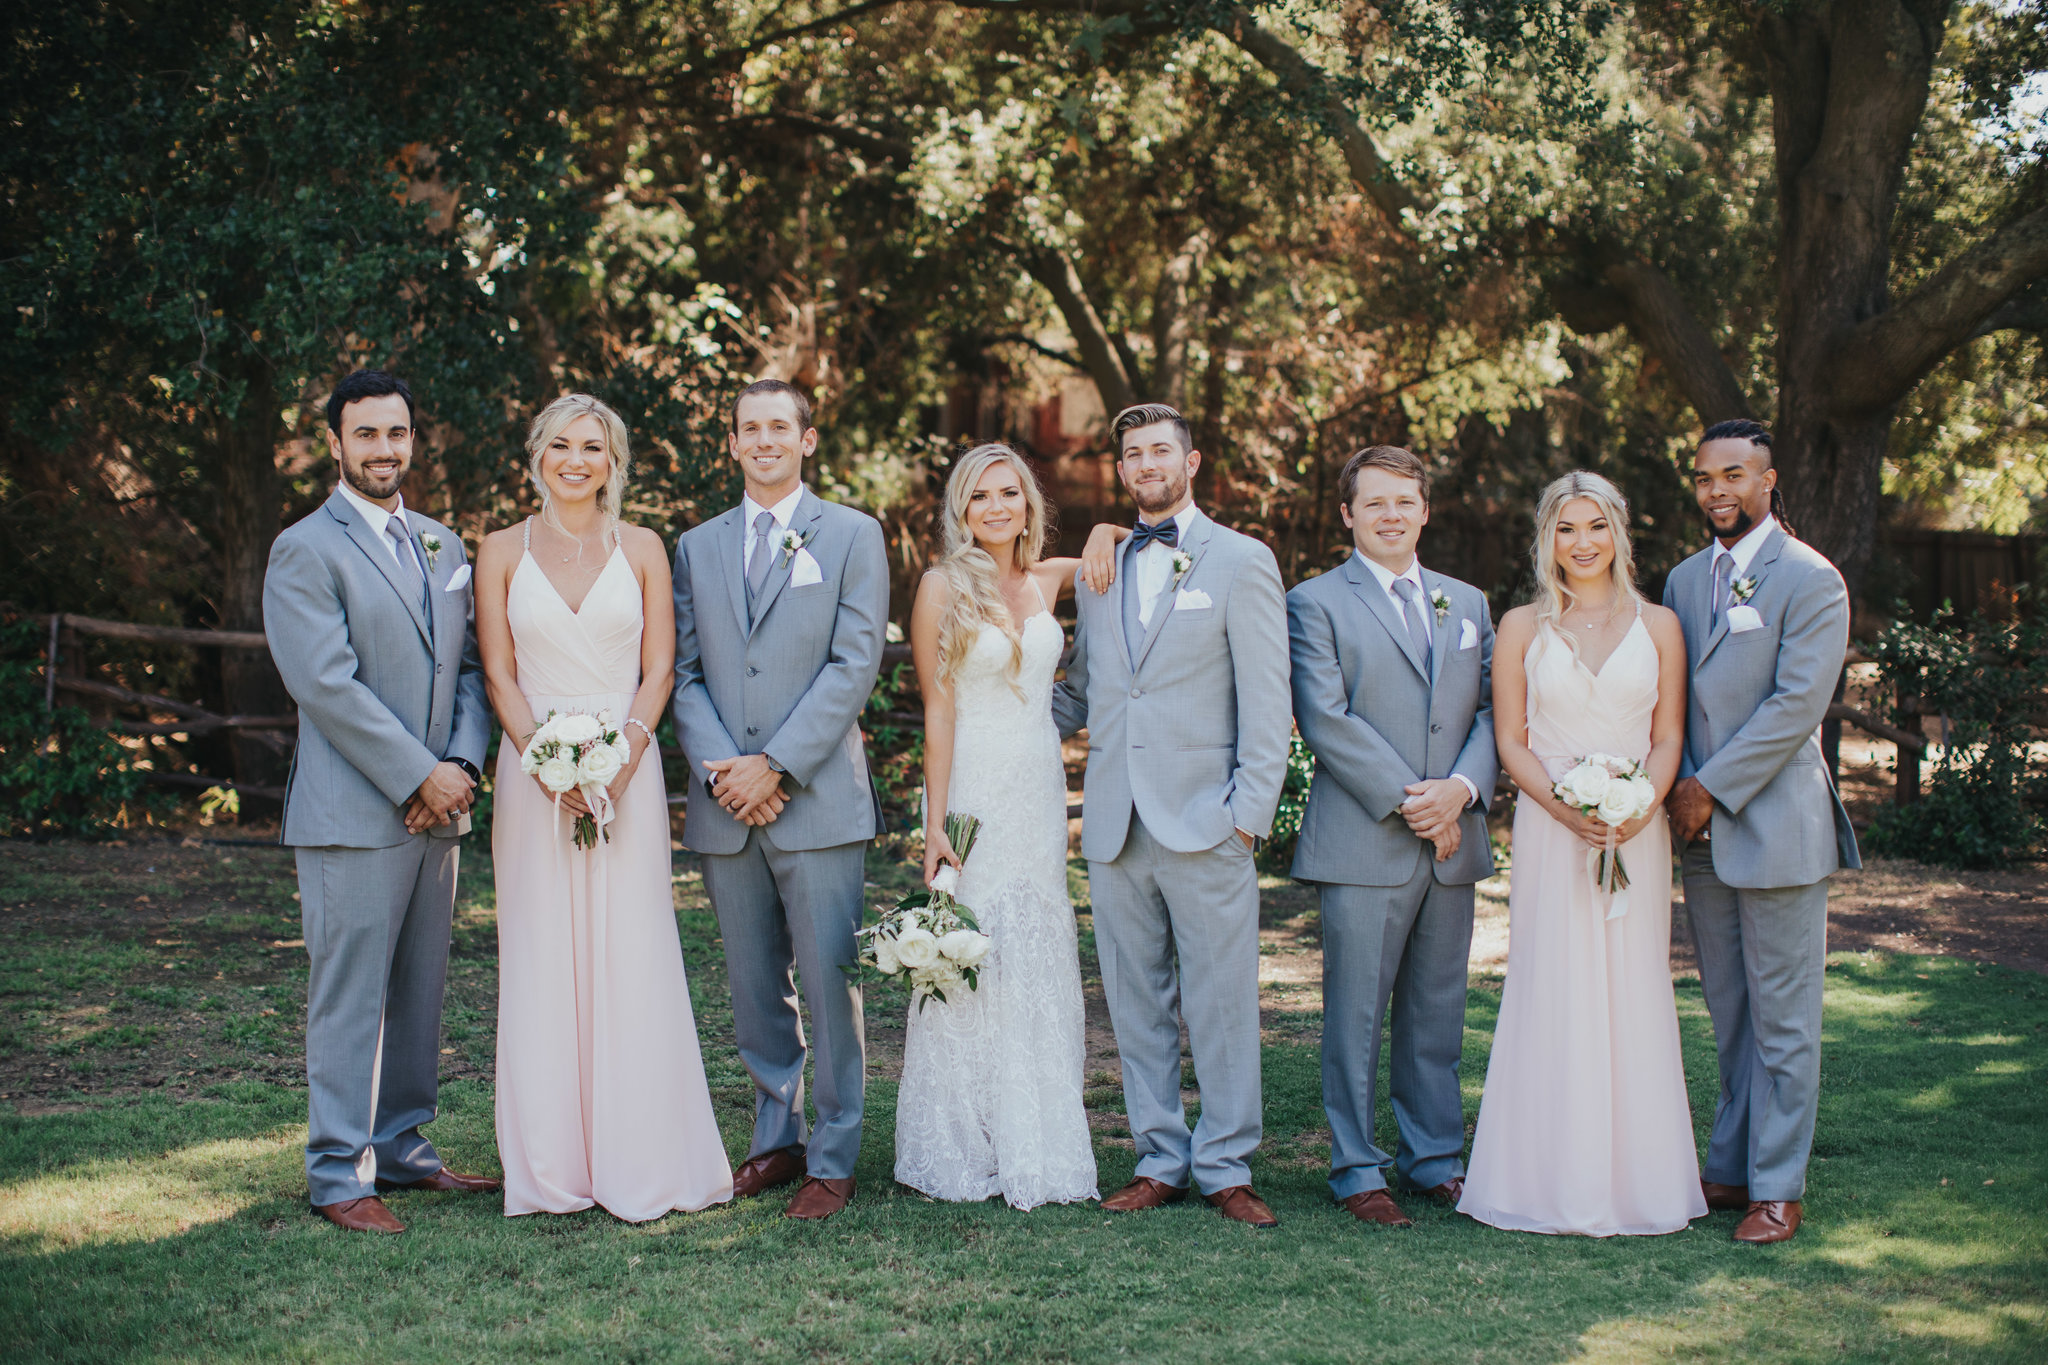 Wedding Party | Calamigos Ranch